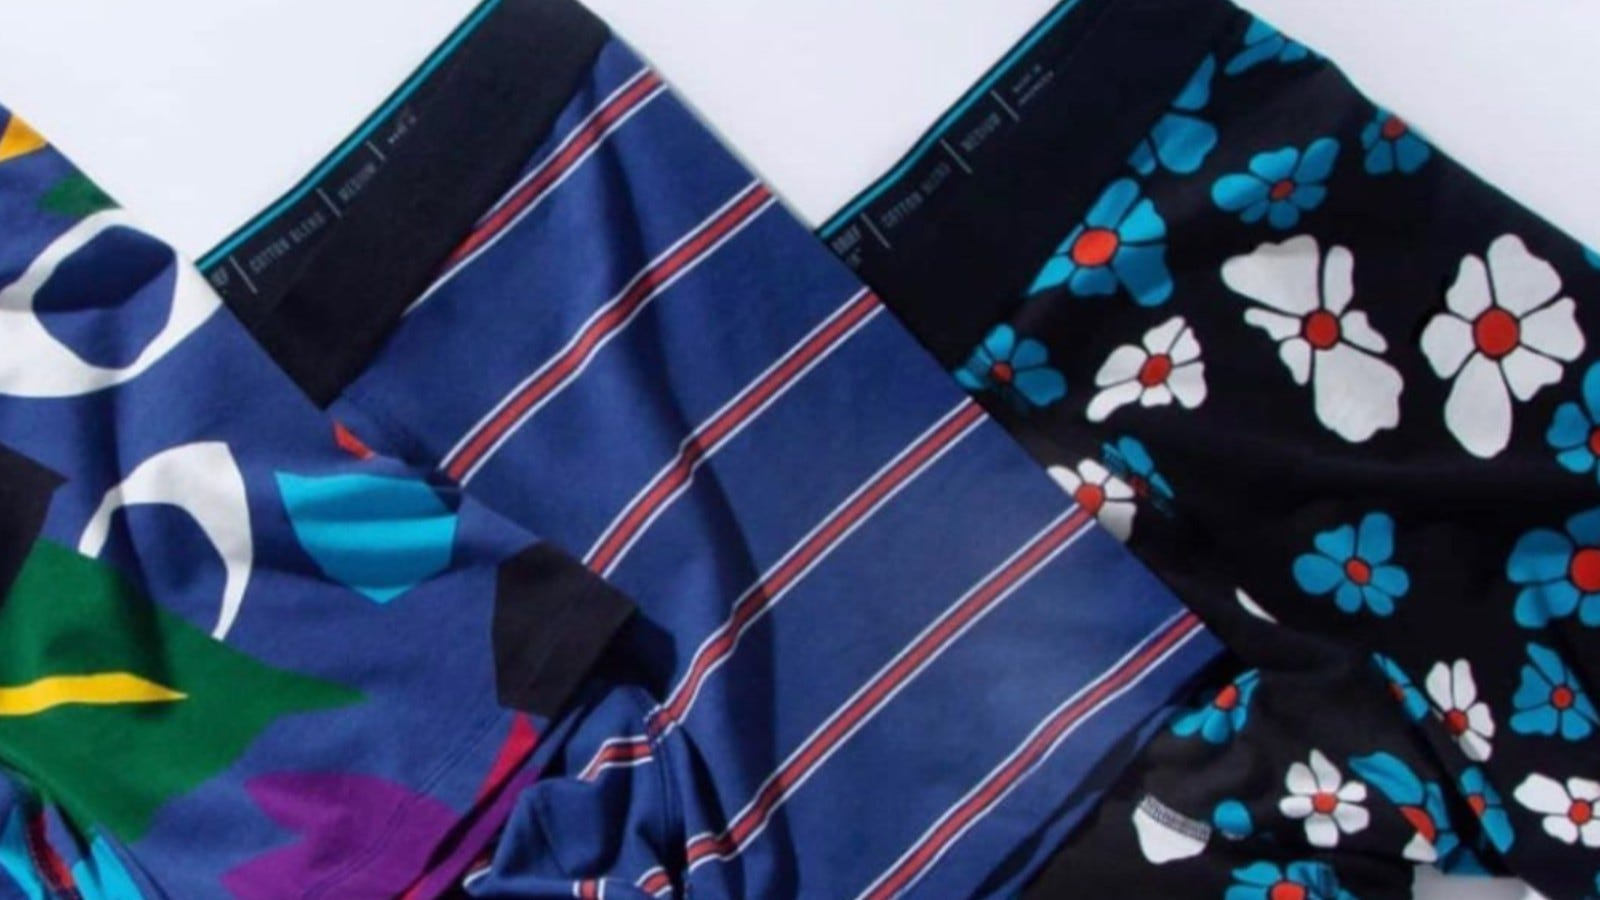 Three pairs of Stance boxer briefs.